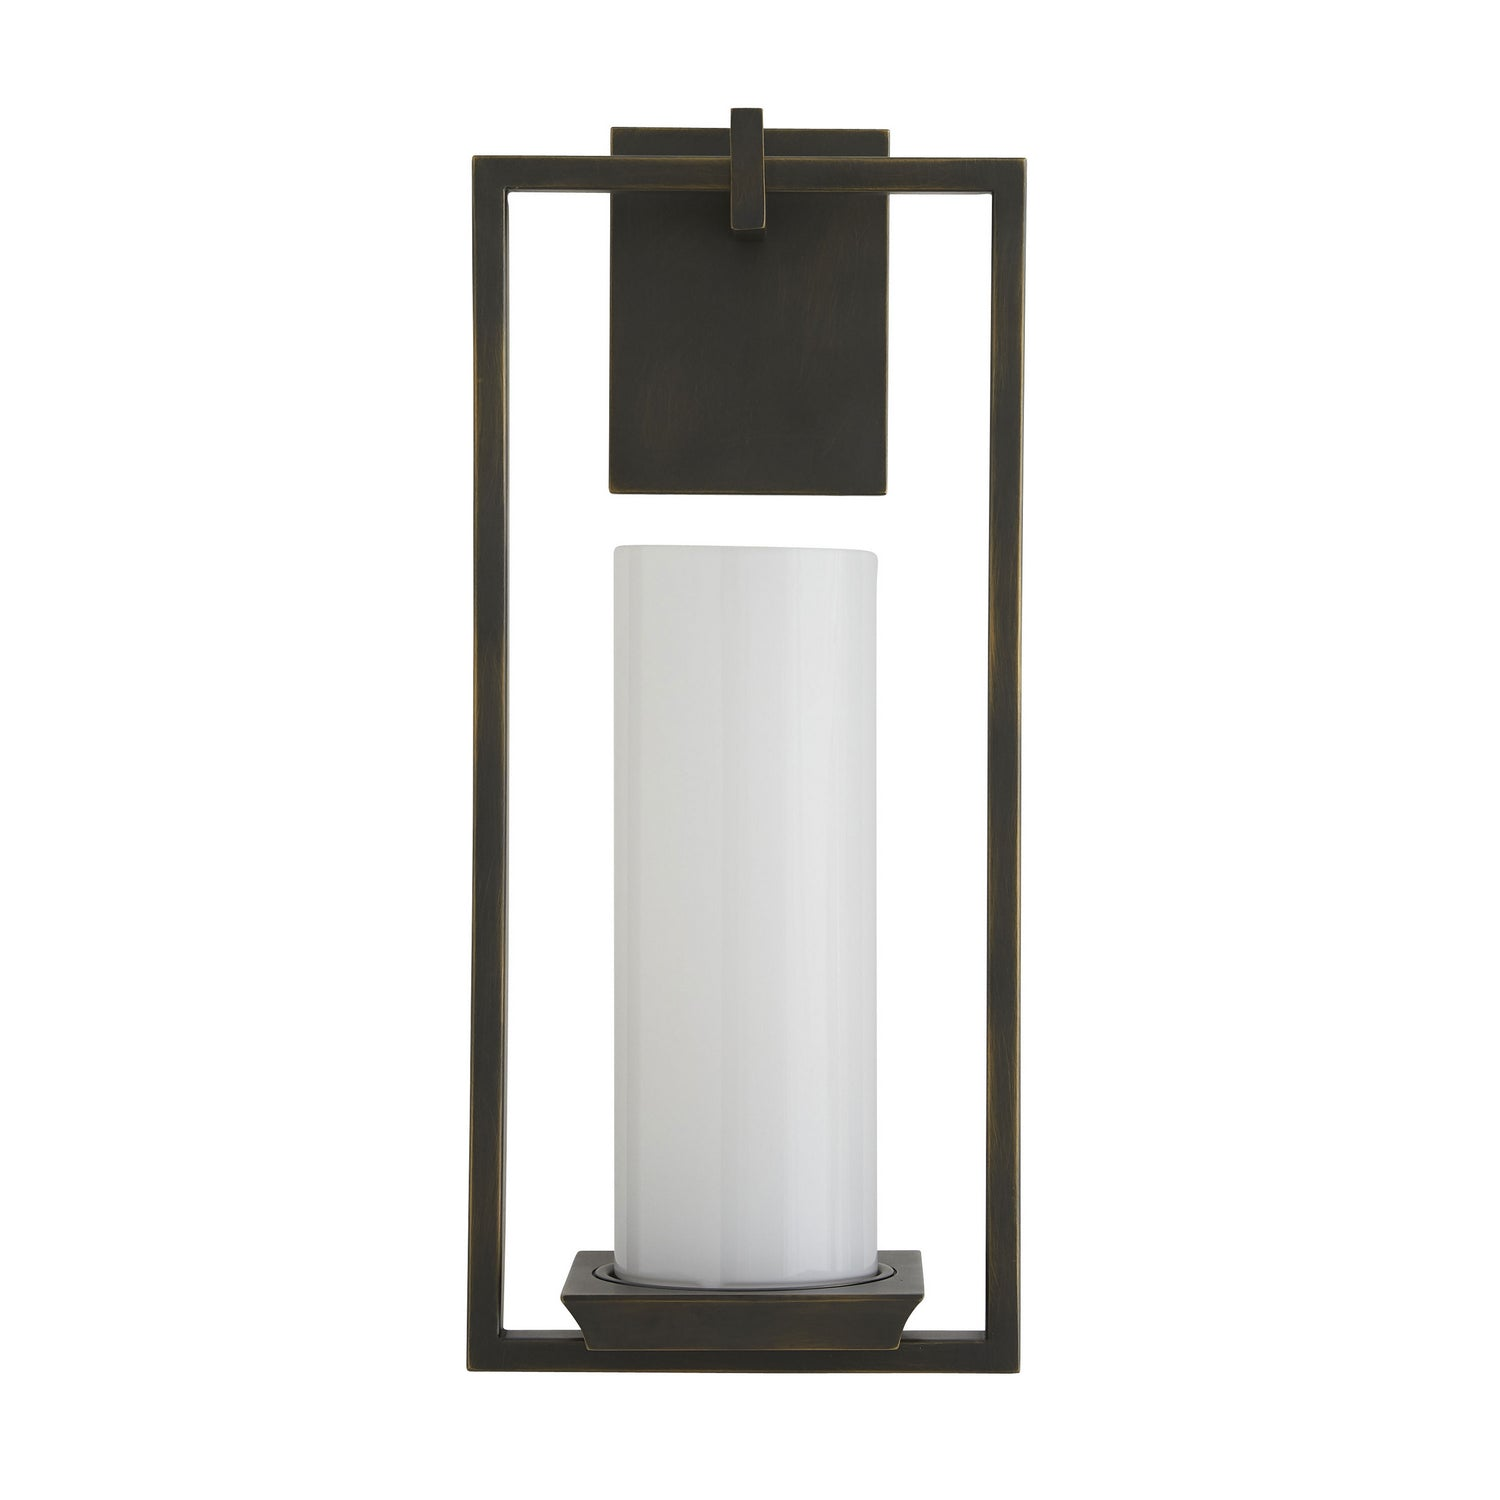 Arteriors - One Light Wall Sconce - Ray Booth for Arteriors - Aged Bronze